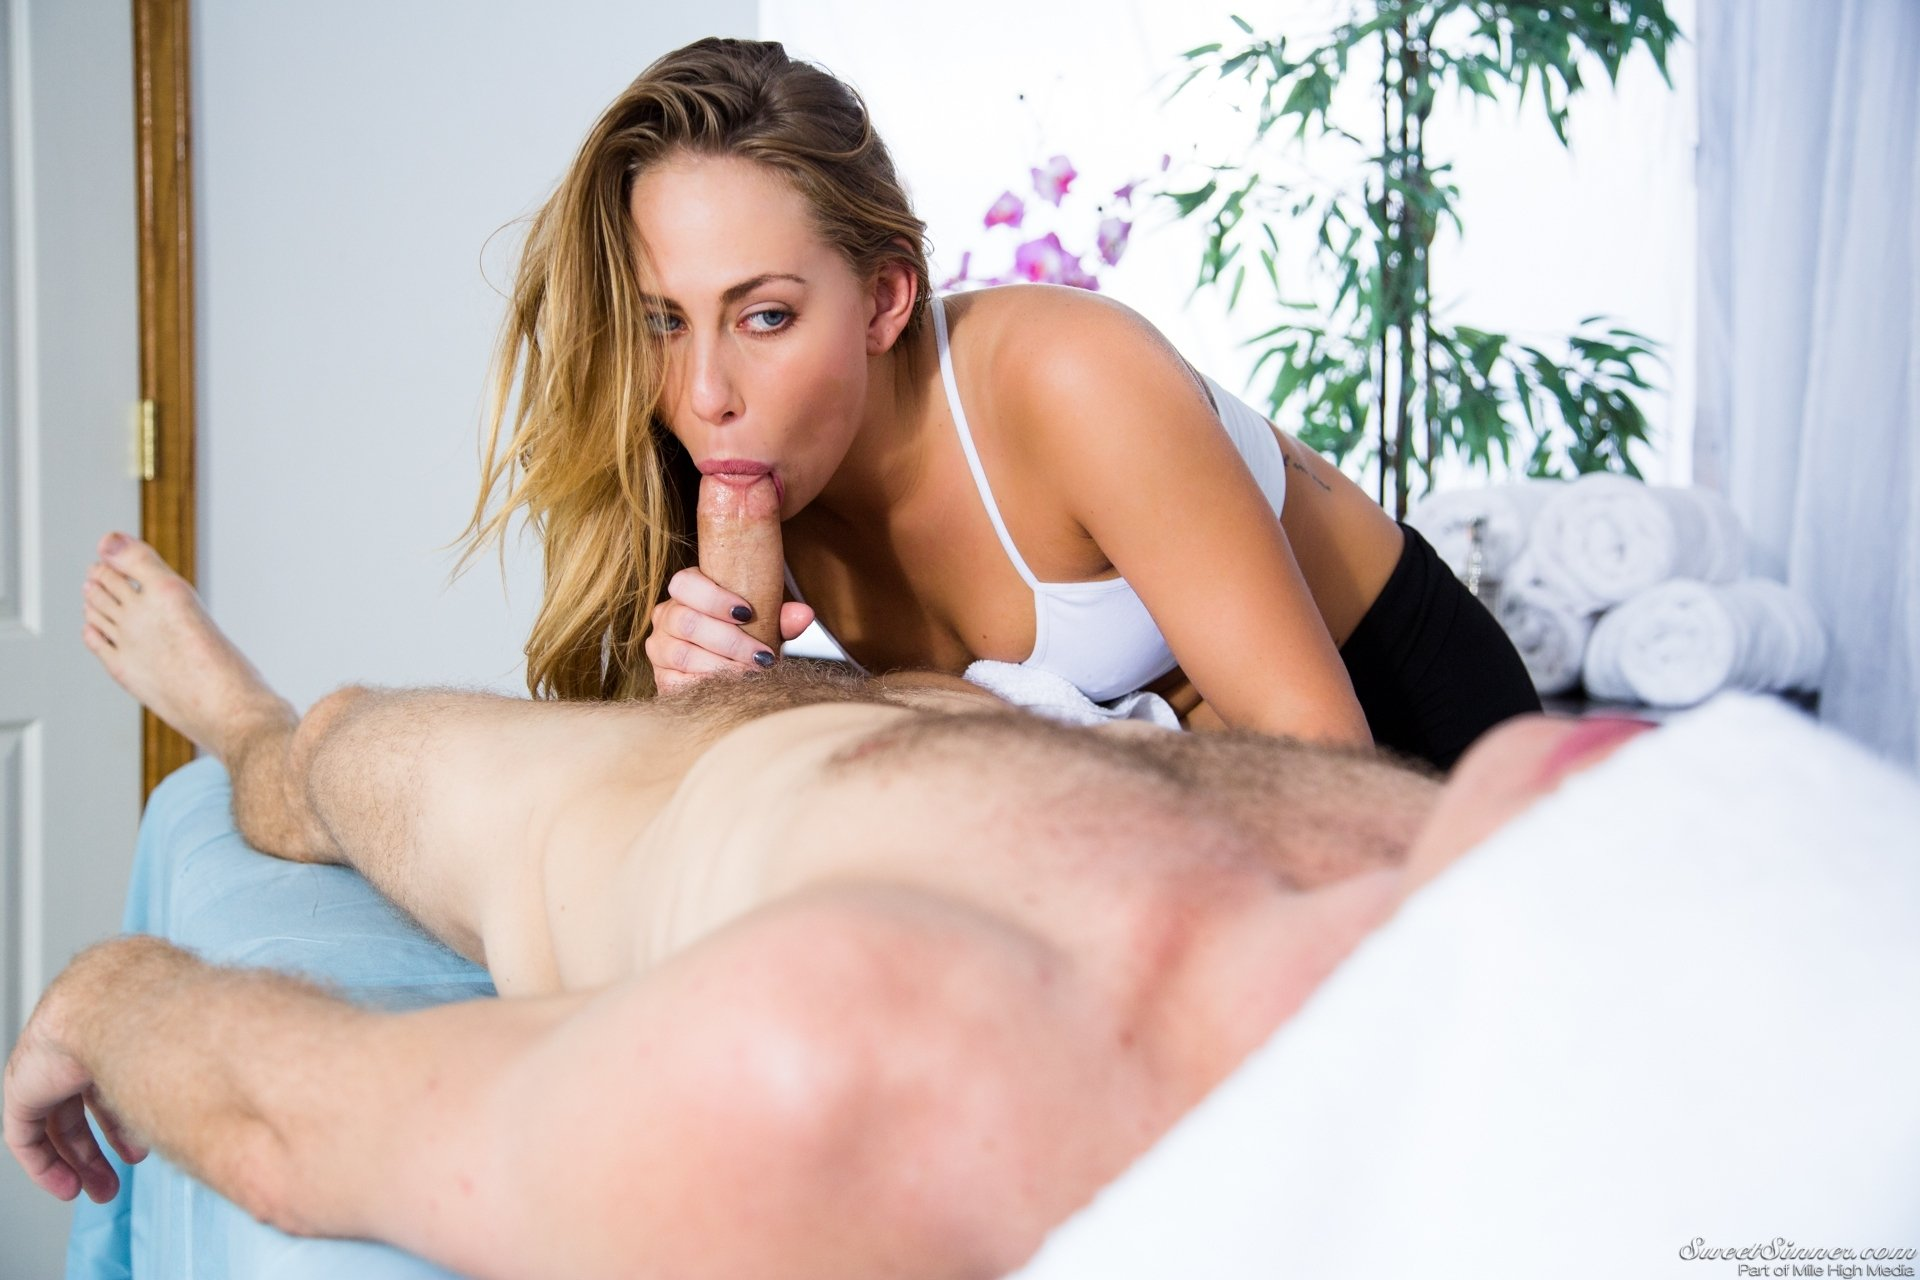 Fucked up drunk girl free #1